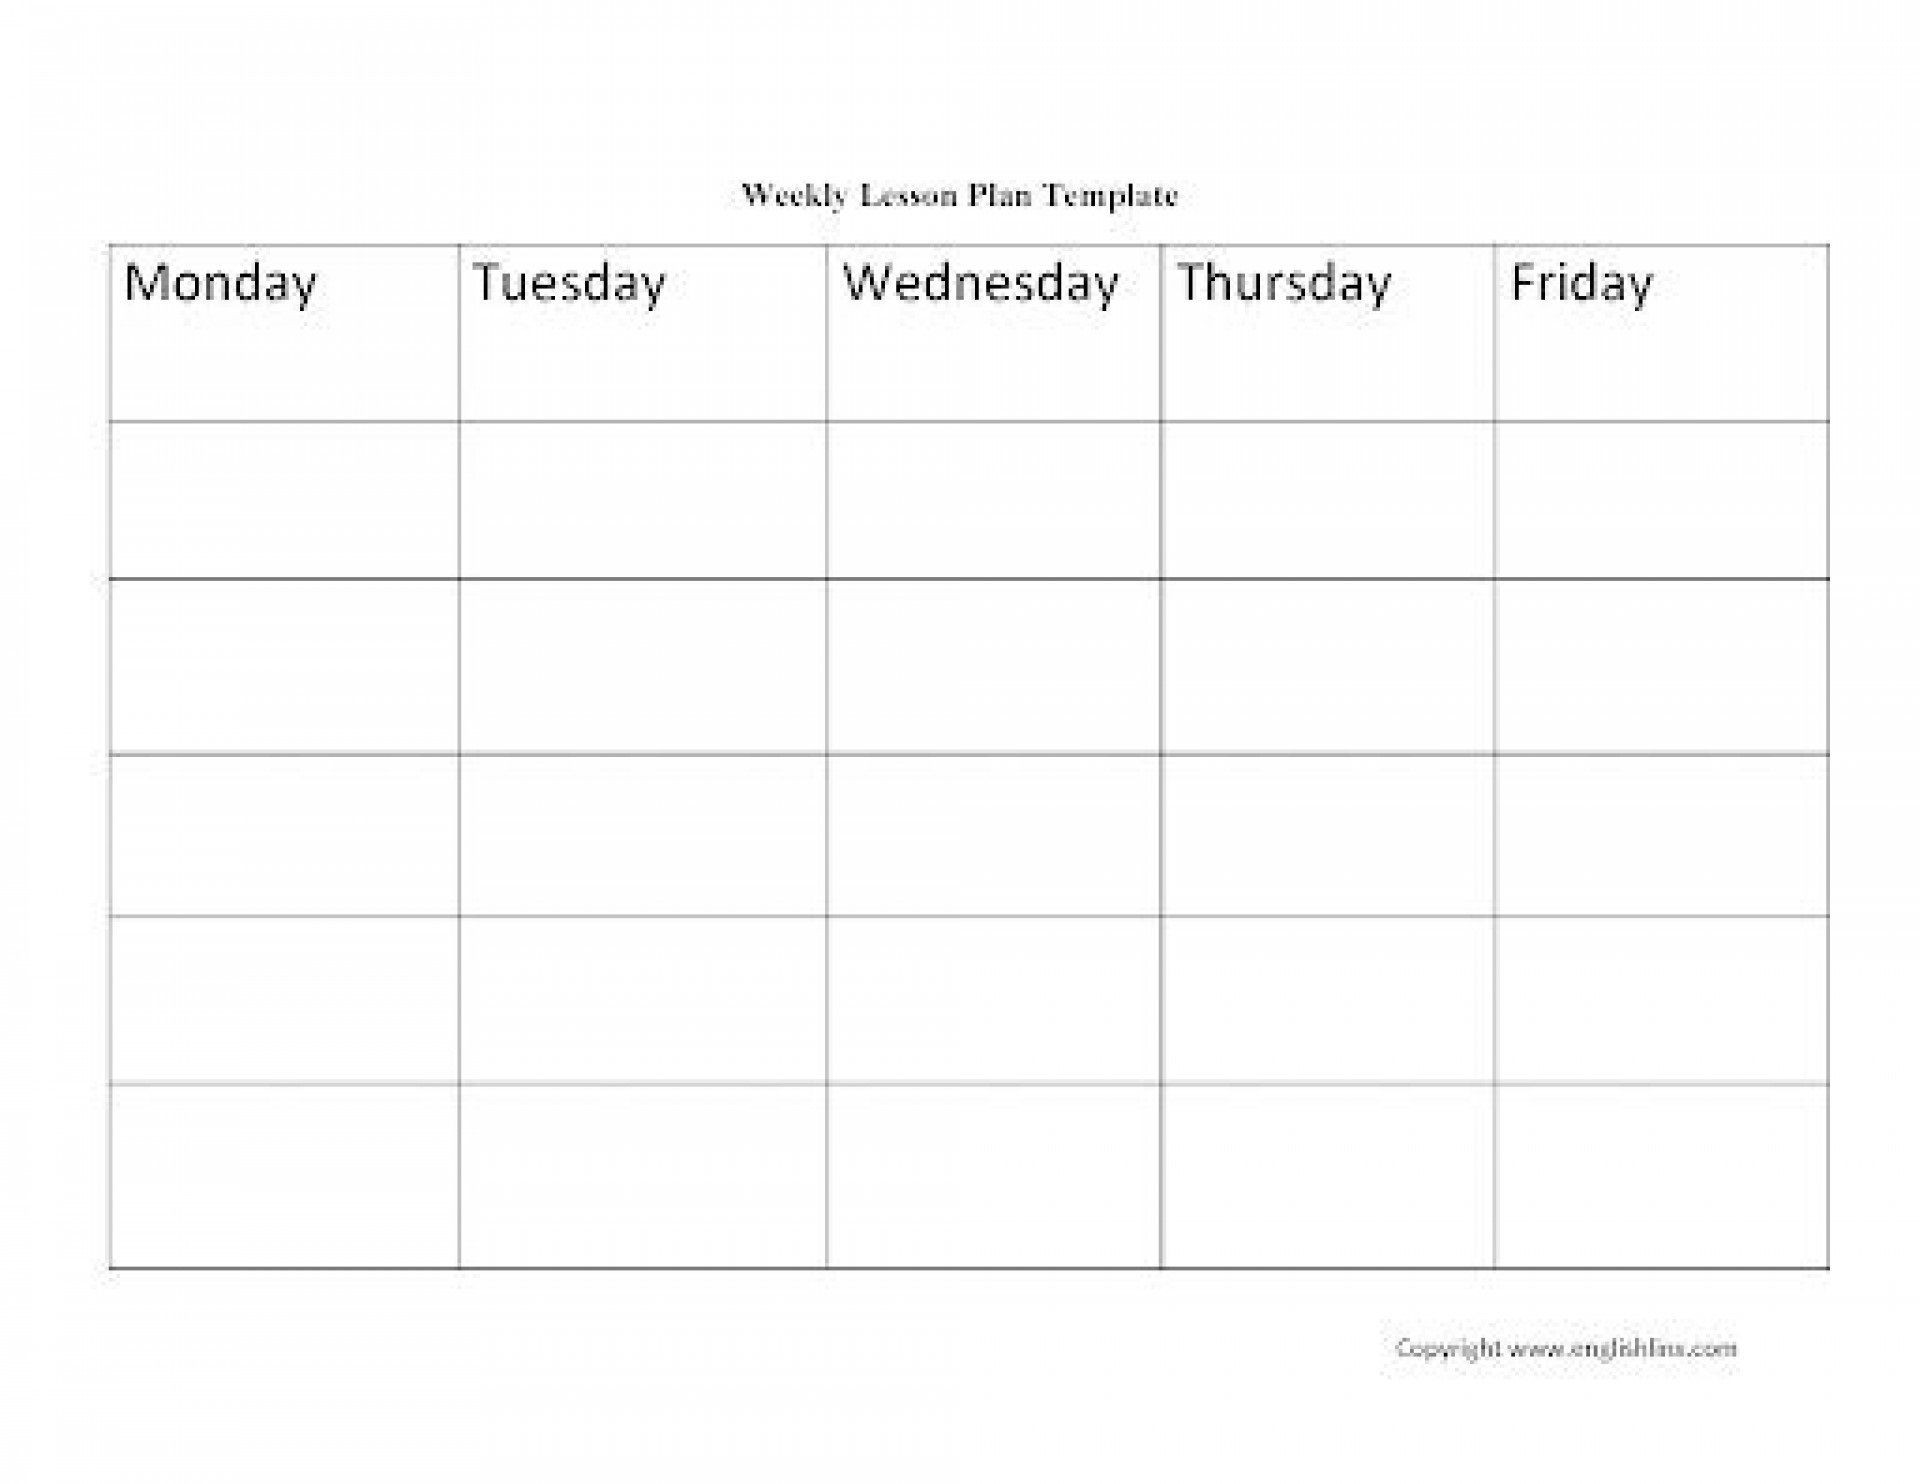 002 Formidable Weekly Lesson Plan Template Google Doc Concept  Docs 5e Simple1920